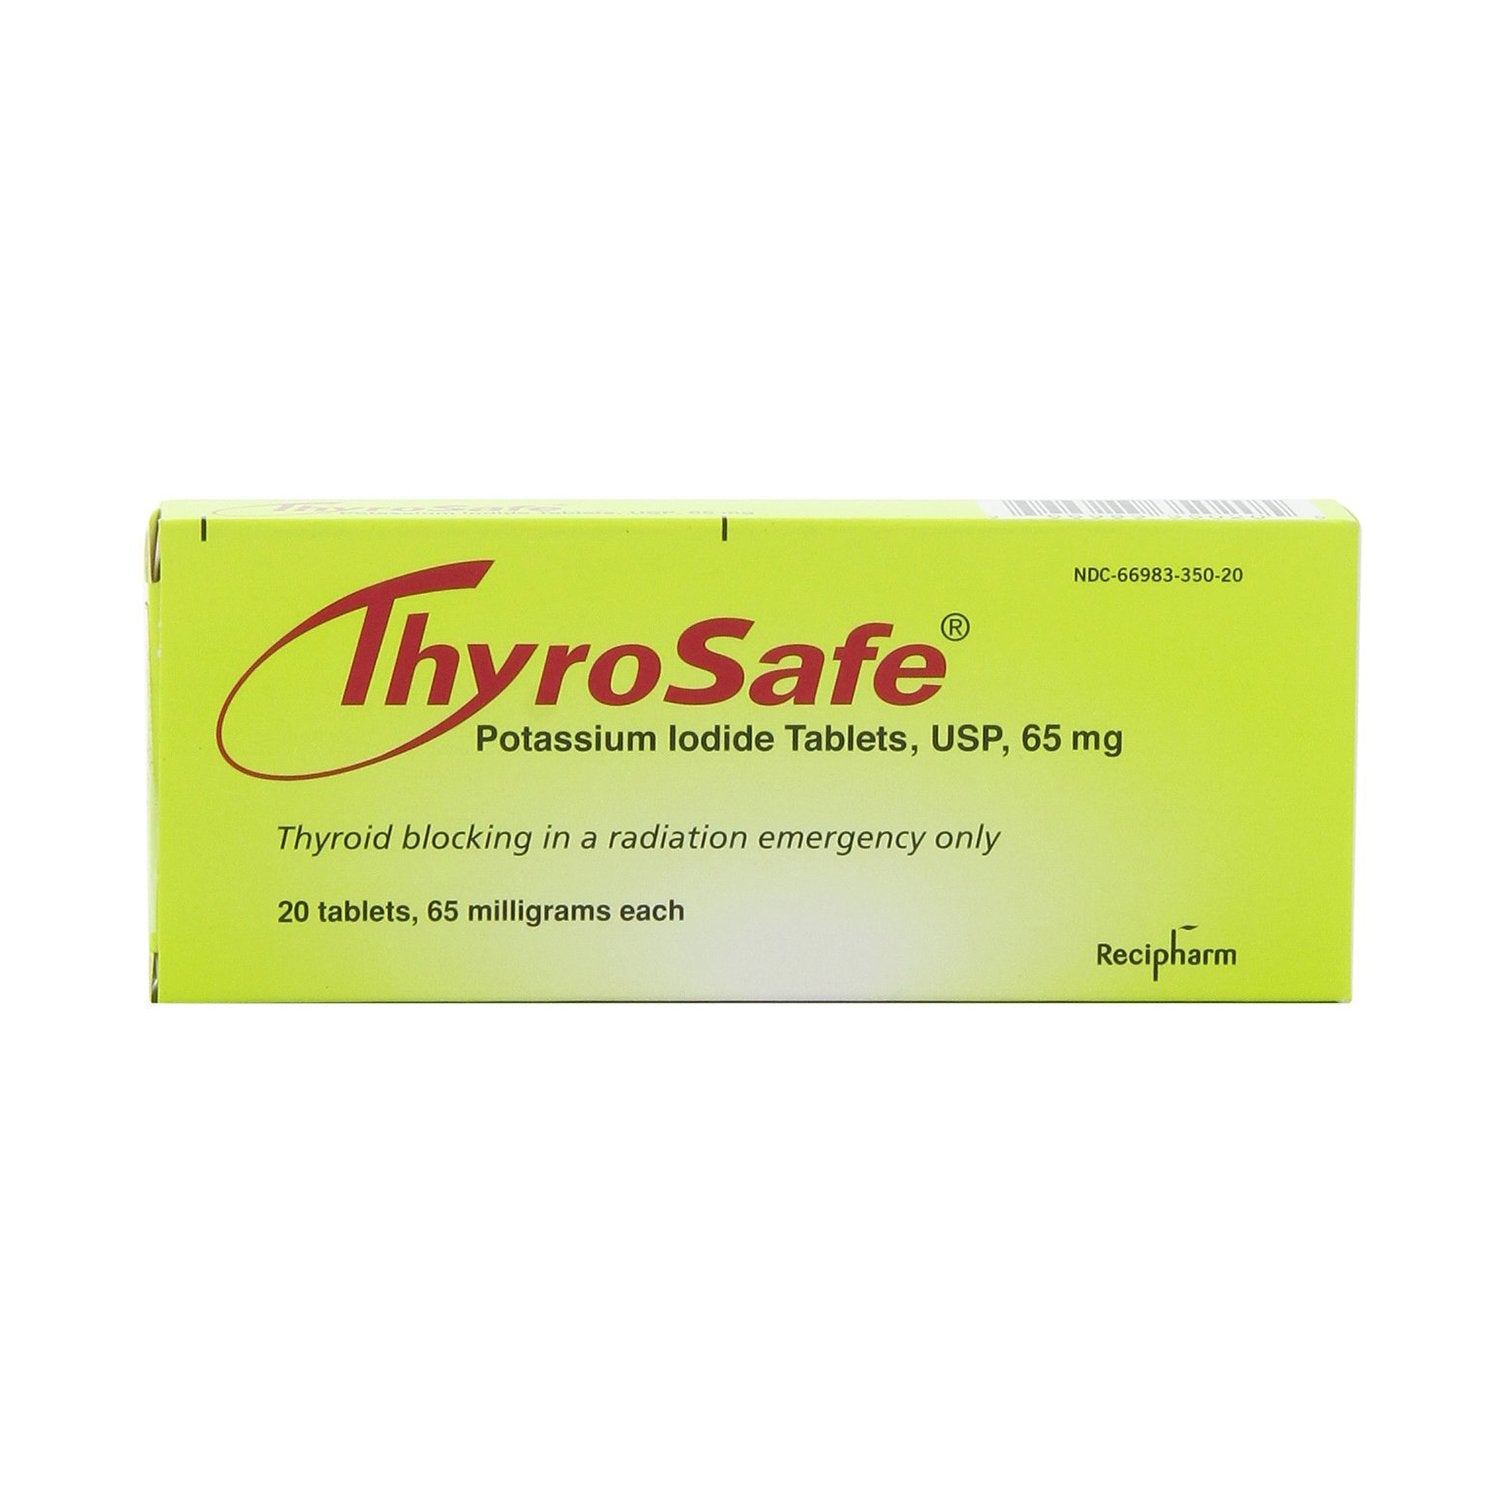 Thyrosafe potassium iodide tablets included in the MIRA Safety Nuclear Survival Kit